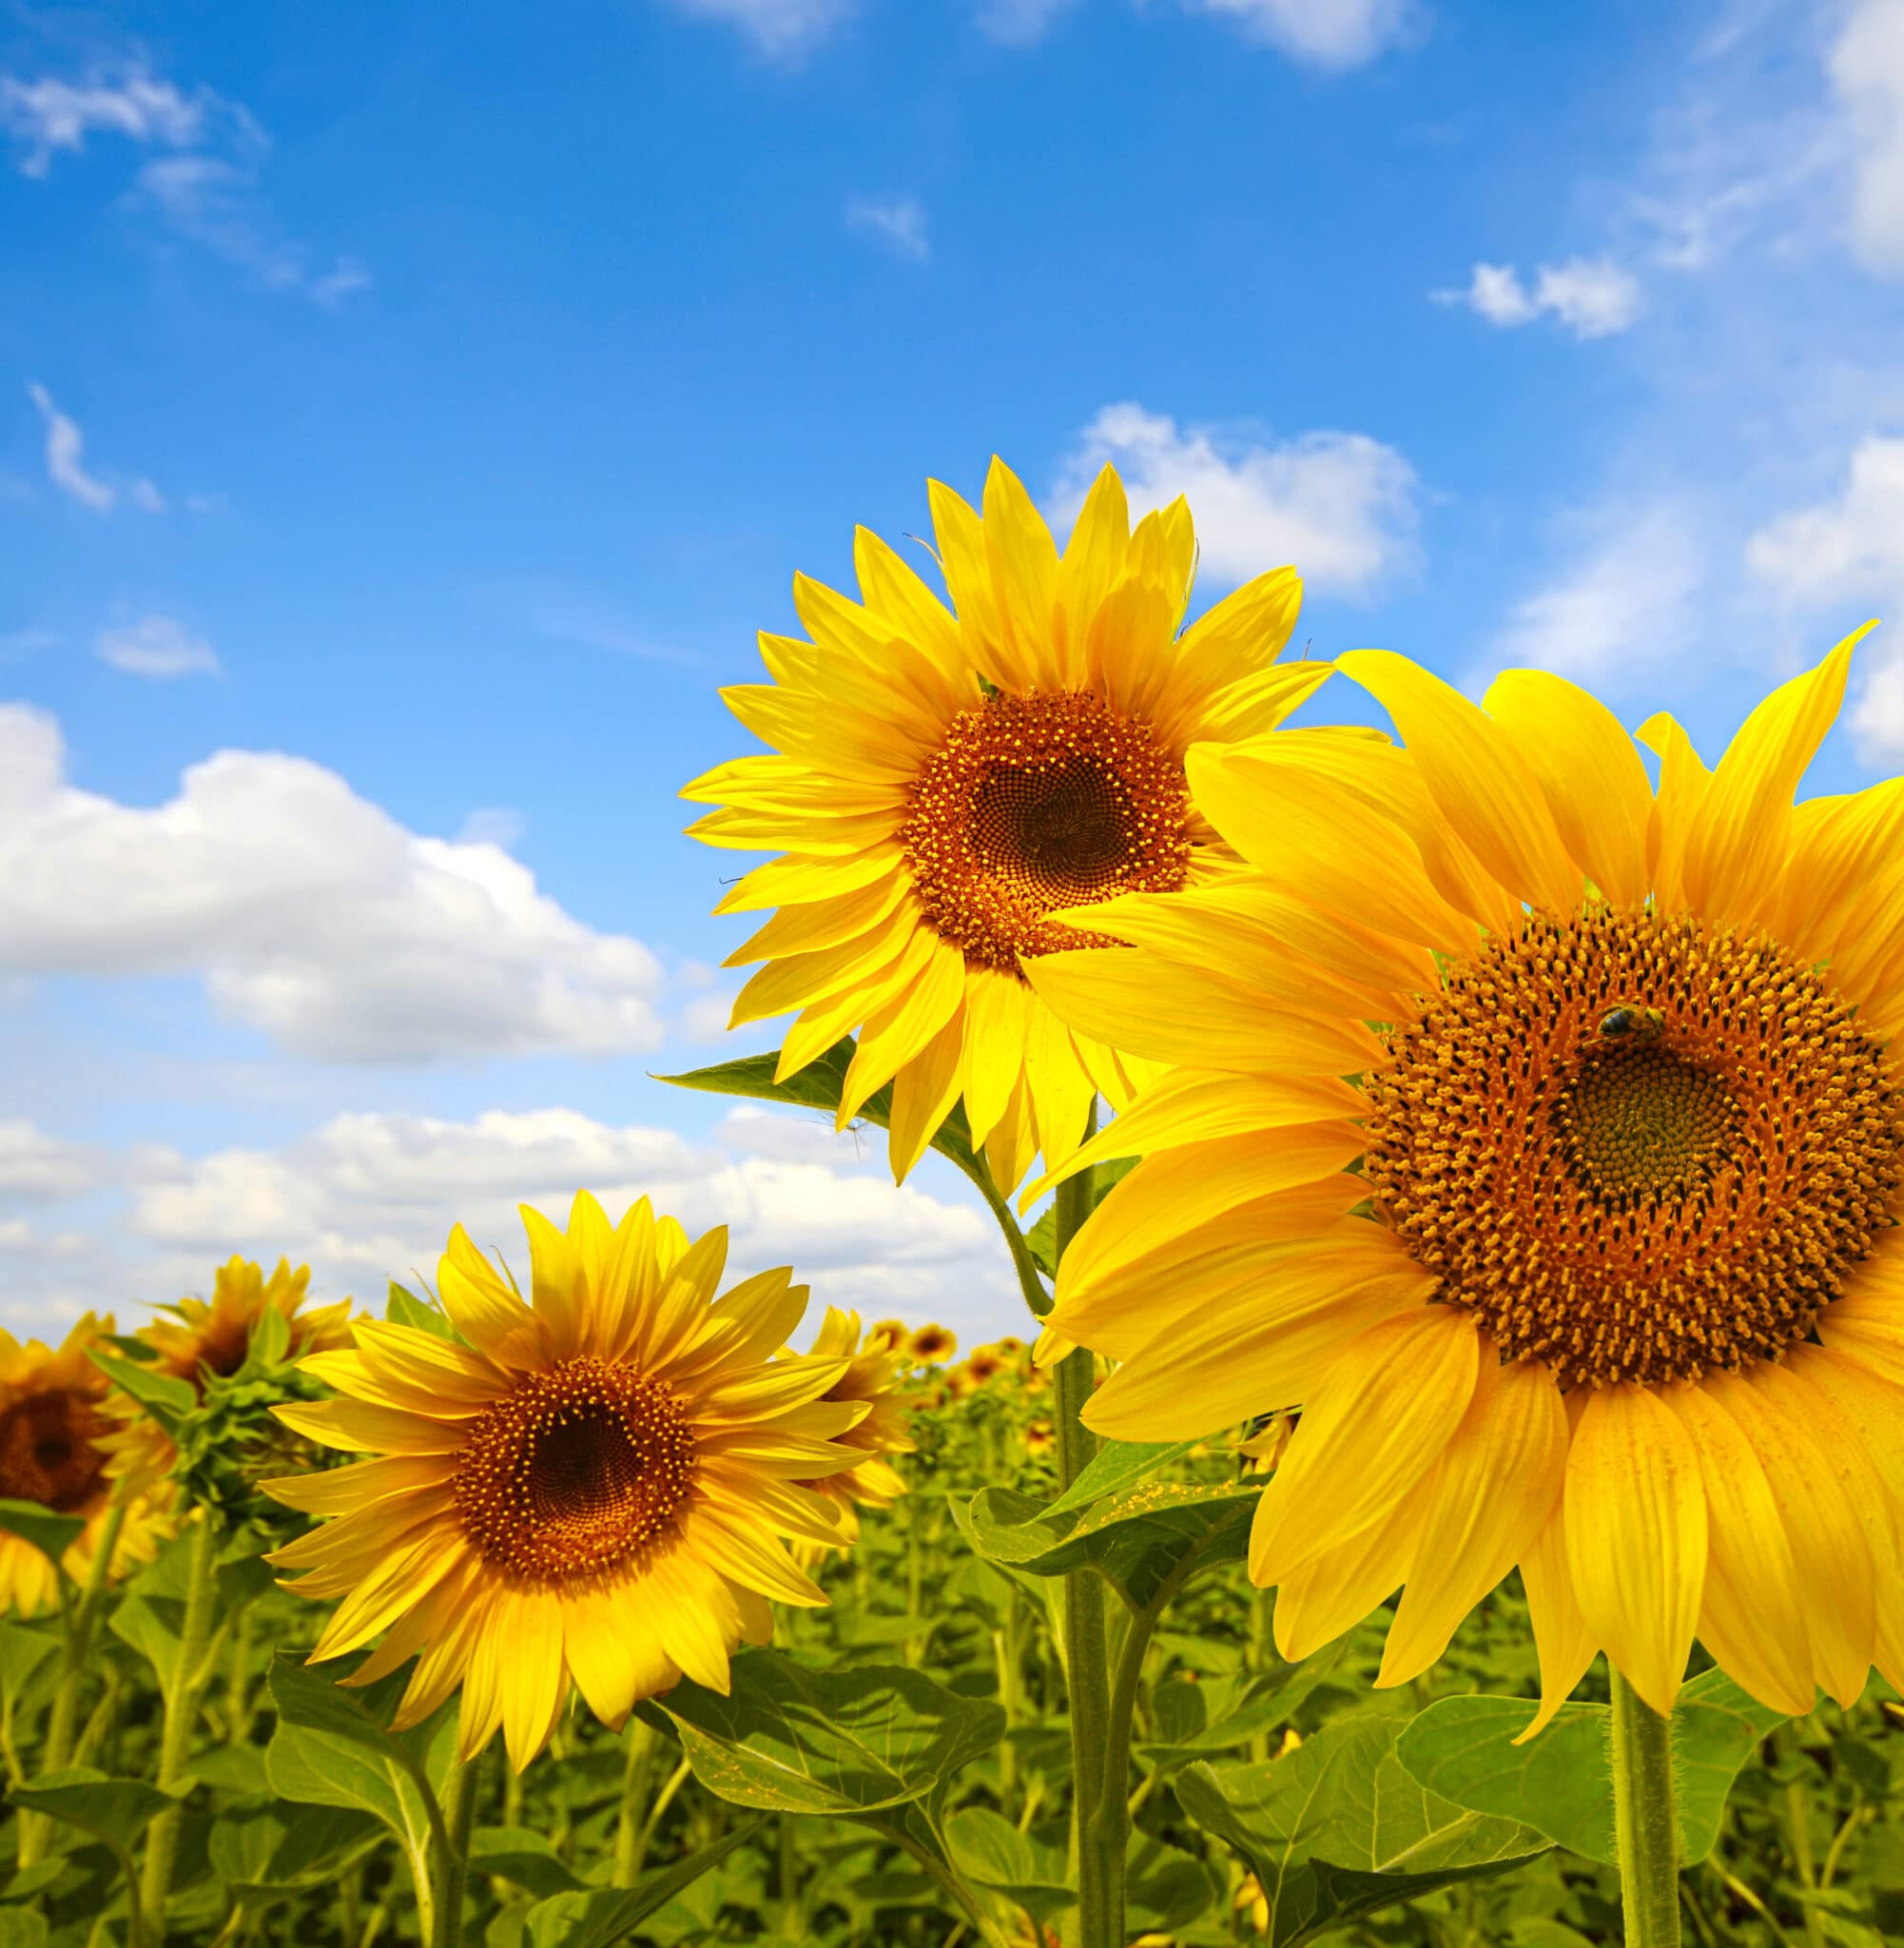 Bright yellow sunflowers against a blue sky.